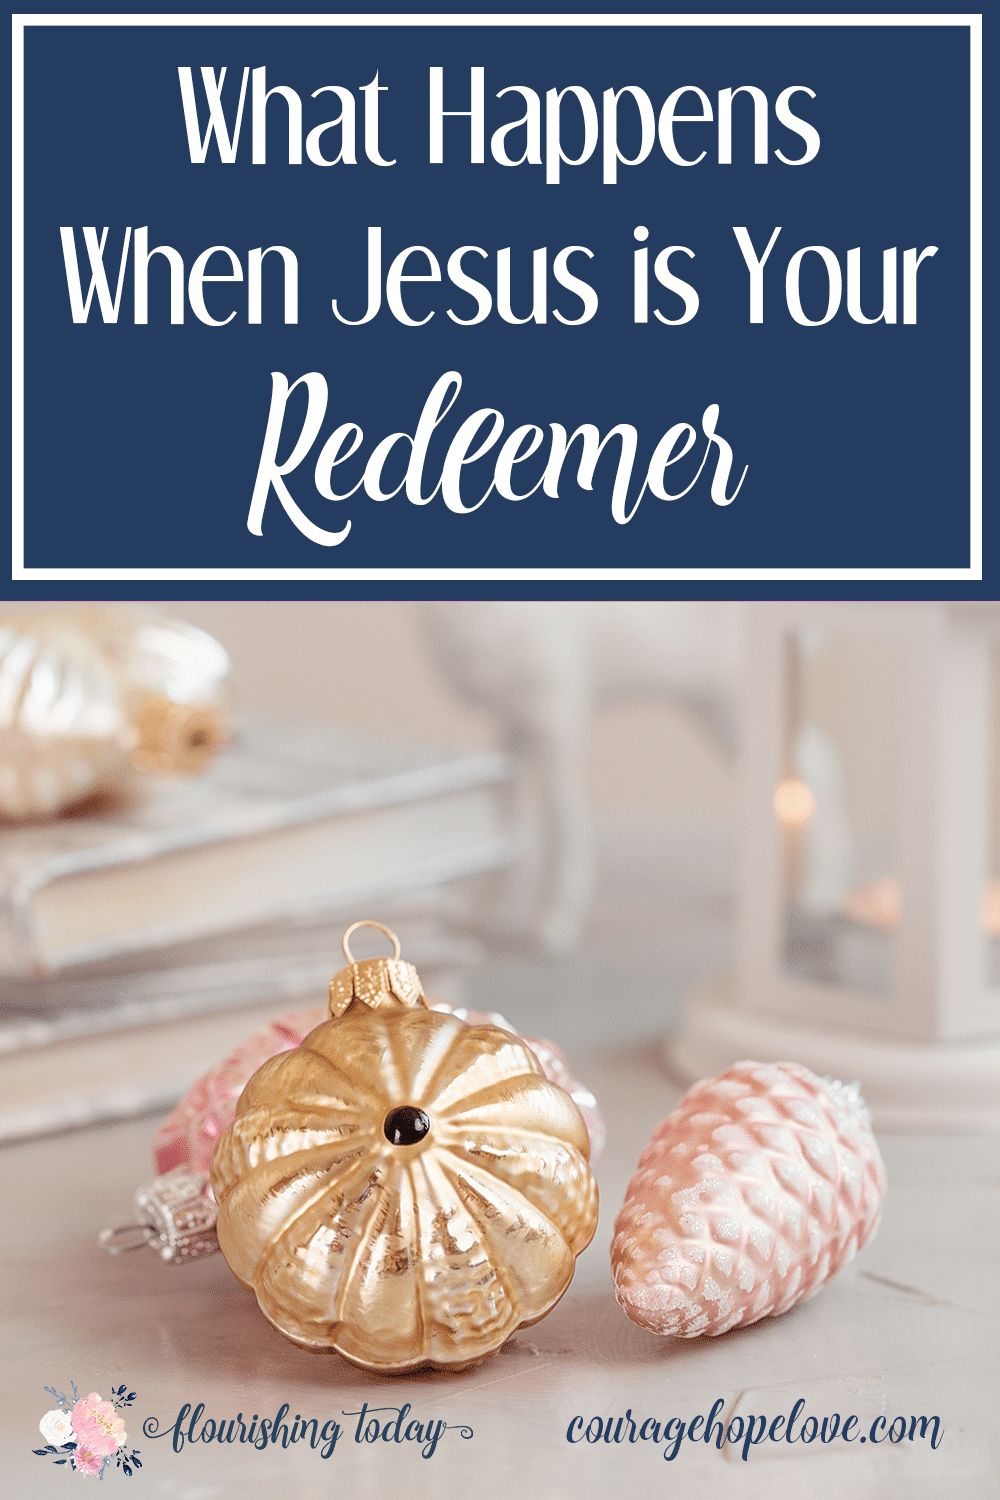 What does it mean that Jesus is our Redeemer? How does that affect us? Join us for a study on the names of Jesus and learn who He is as your Redeemer.